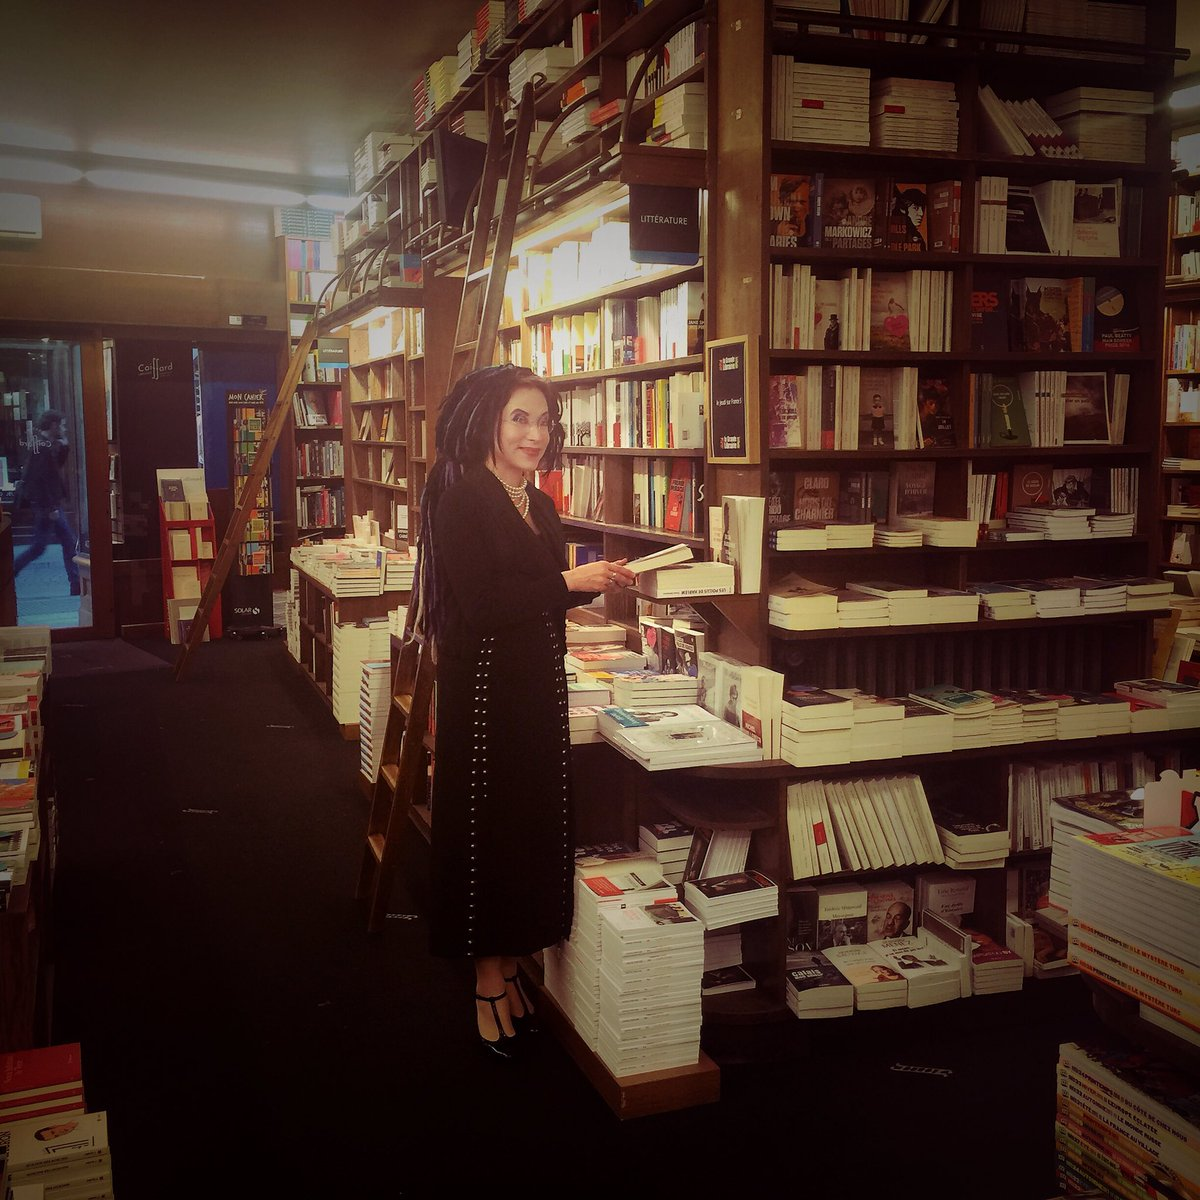 This is what a bookstore should look like. #coiffard #nantes #france #librairie<br>http://pic.twitter.com/VziWZj2oeY